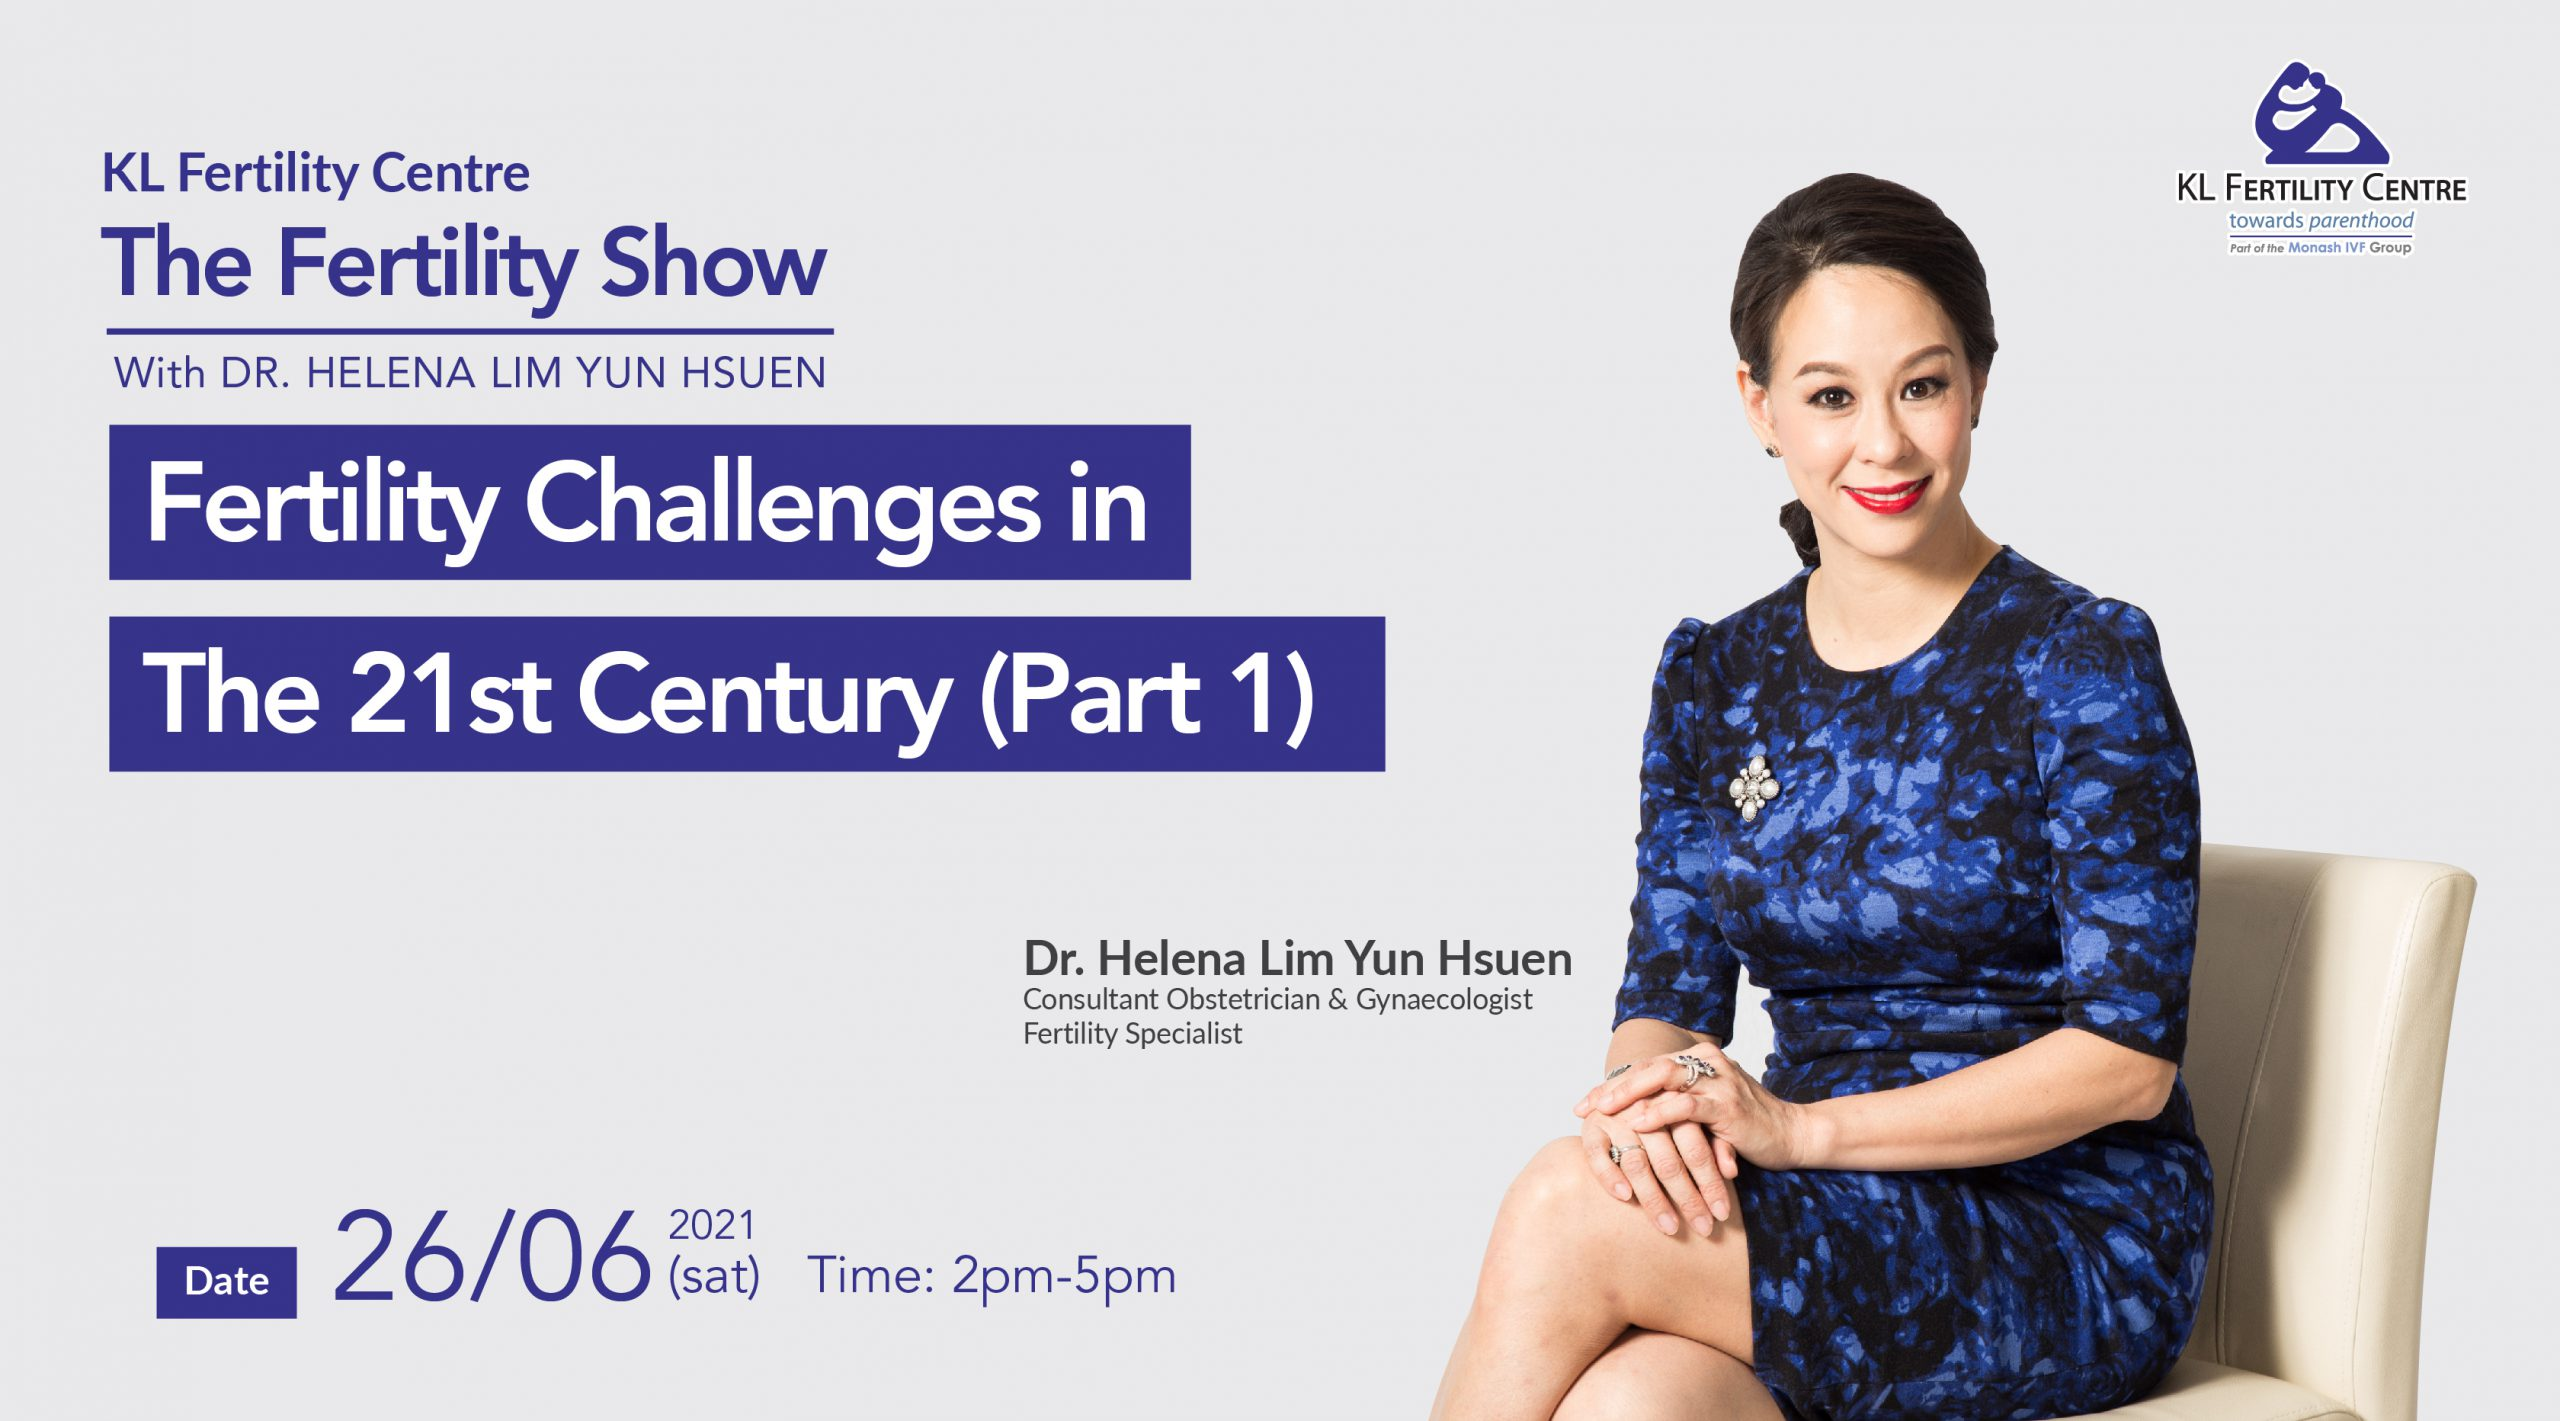 The Fertility Show : Fertility Challenges in The 21st Century (Part 1), 26 June 2021 - Dr. Helena Lim